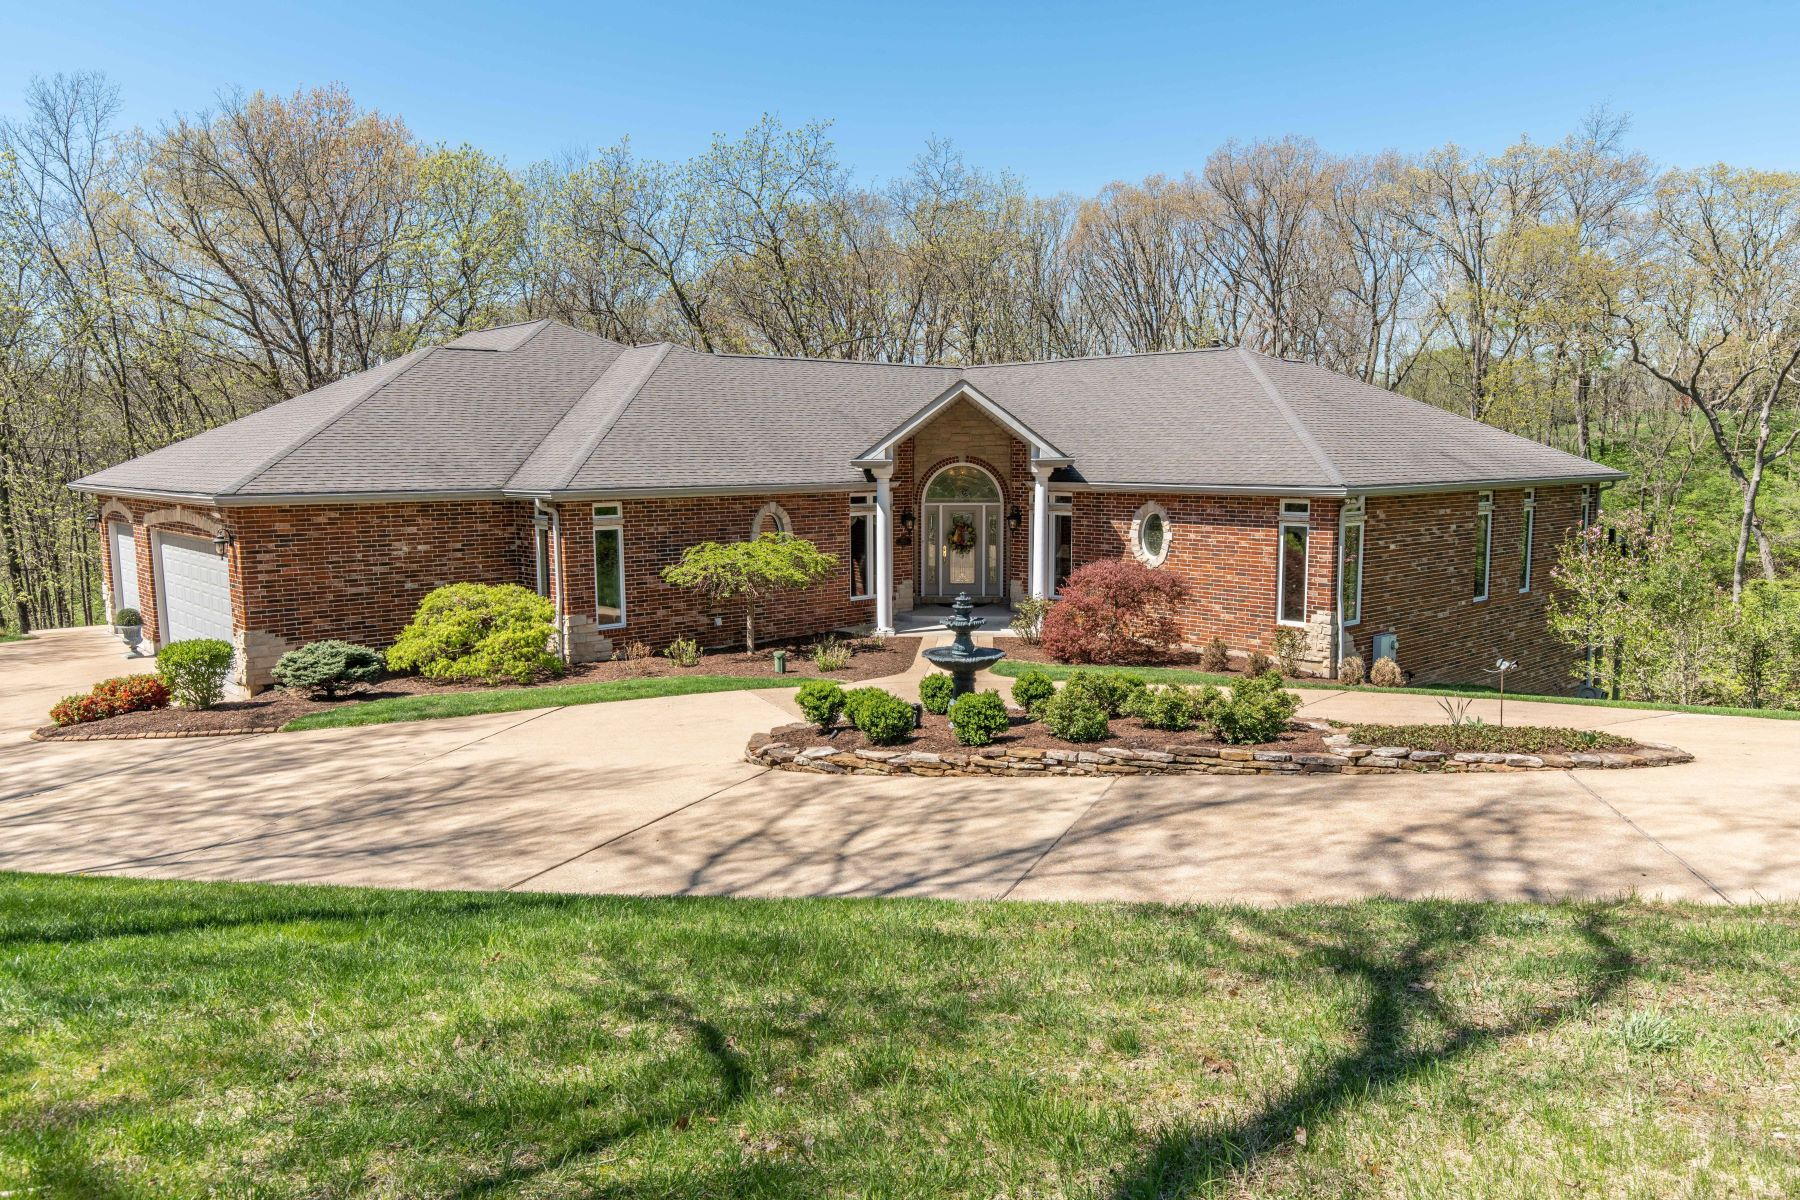 Single Family Homes for Sale at Elegant Ranch on 3 Acres 18563 Bridlespur Estates Drive Wildwood, Missouri 63069 United States